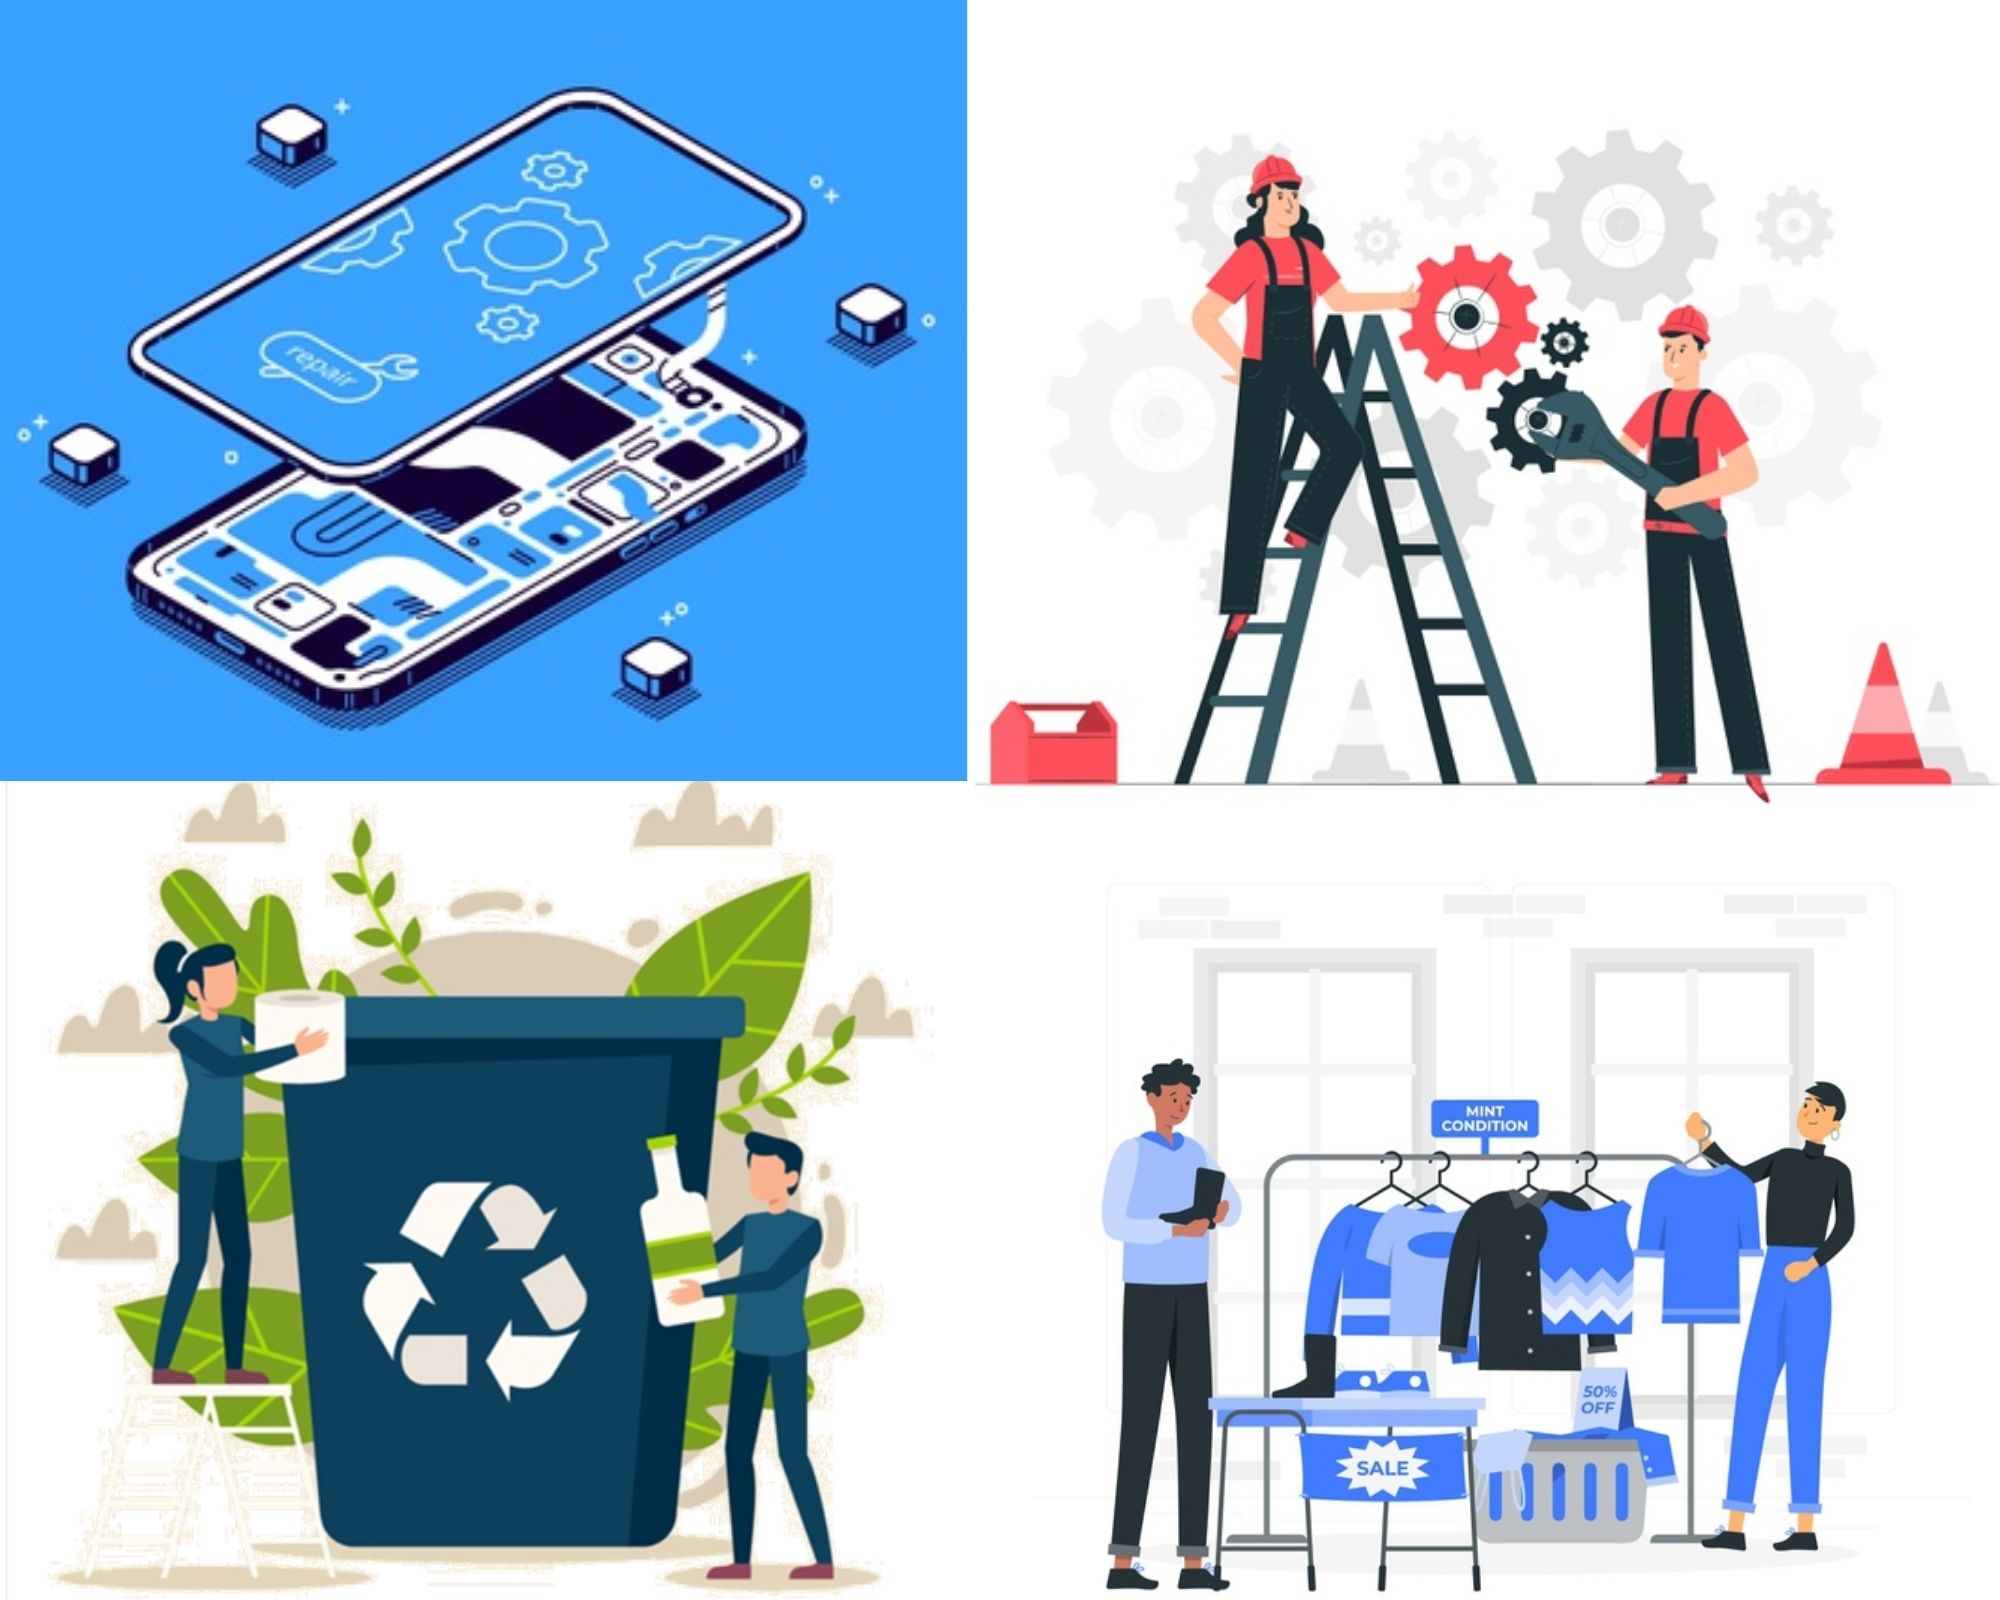 Re-use, Recycle, Redesign, repaire, circular economy, social economy